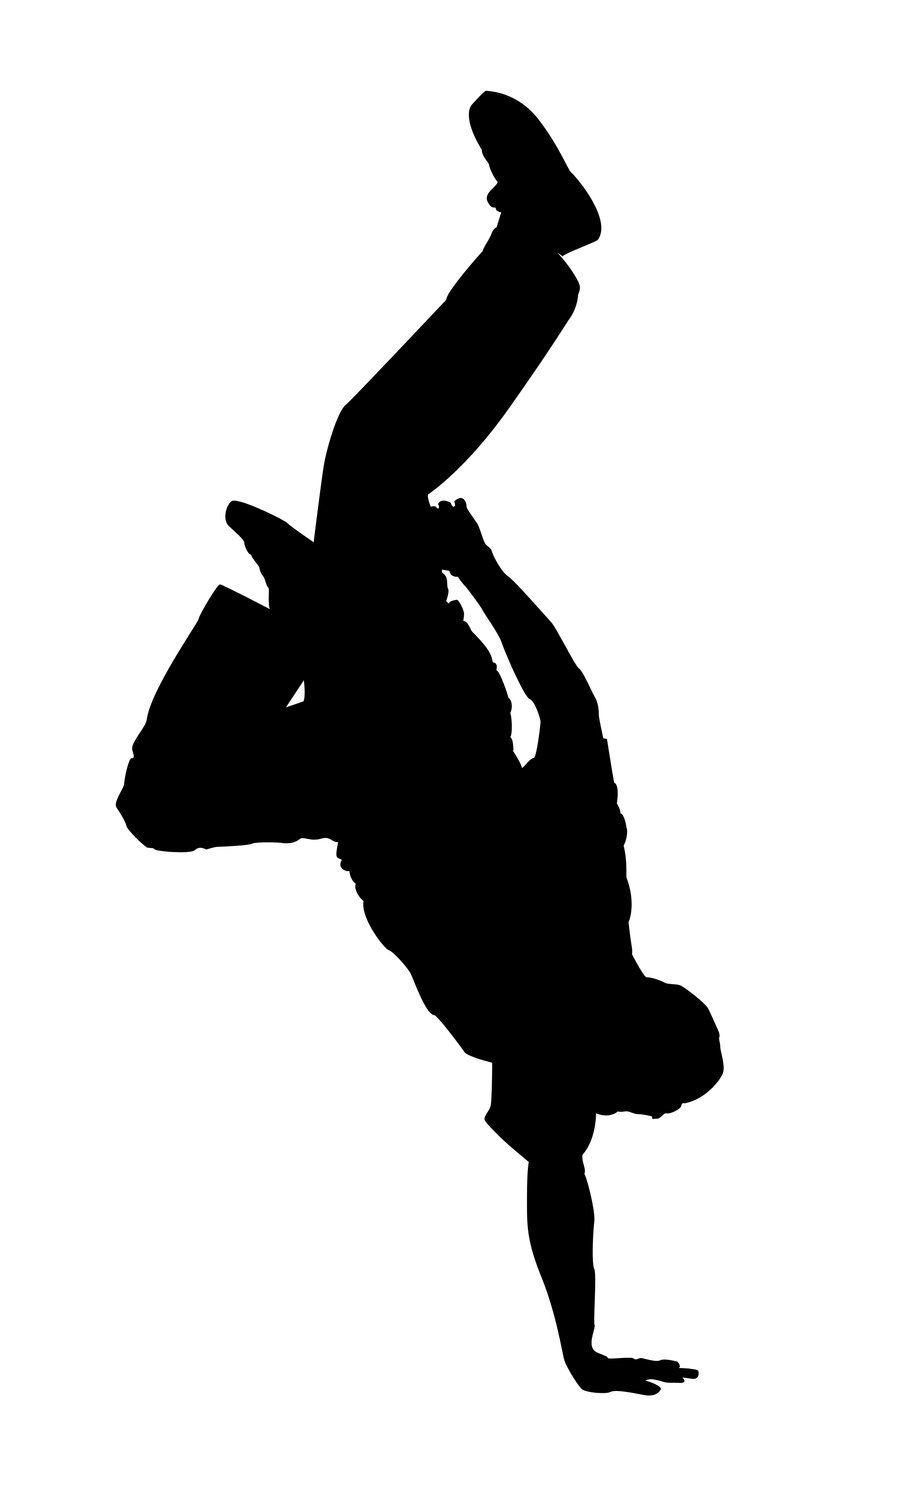 Break Dancer Silhouette 3 by ~kkplum on deviantART | Party ...